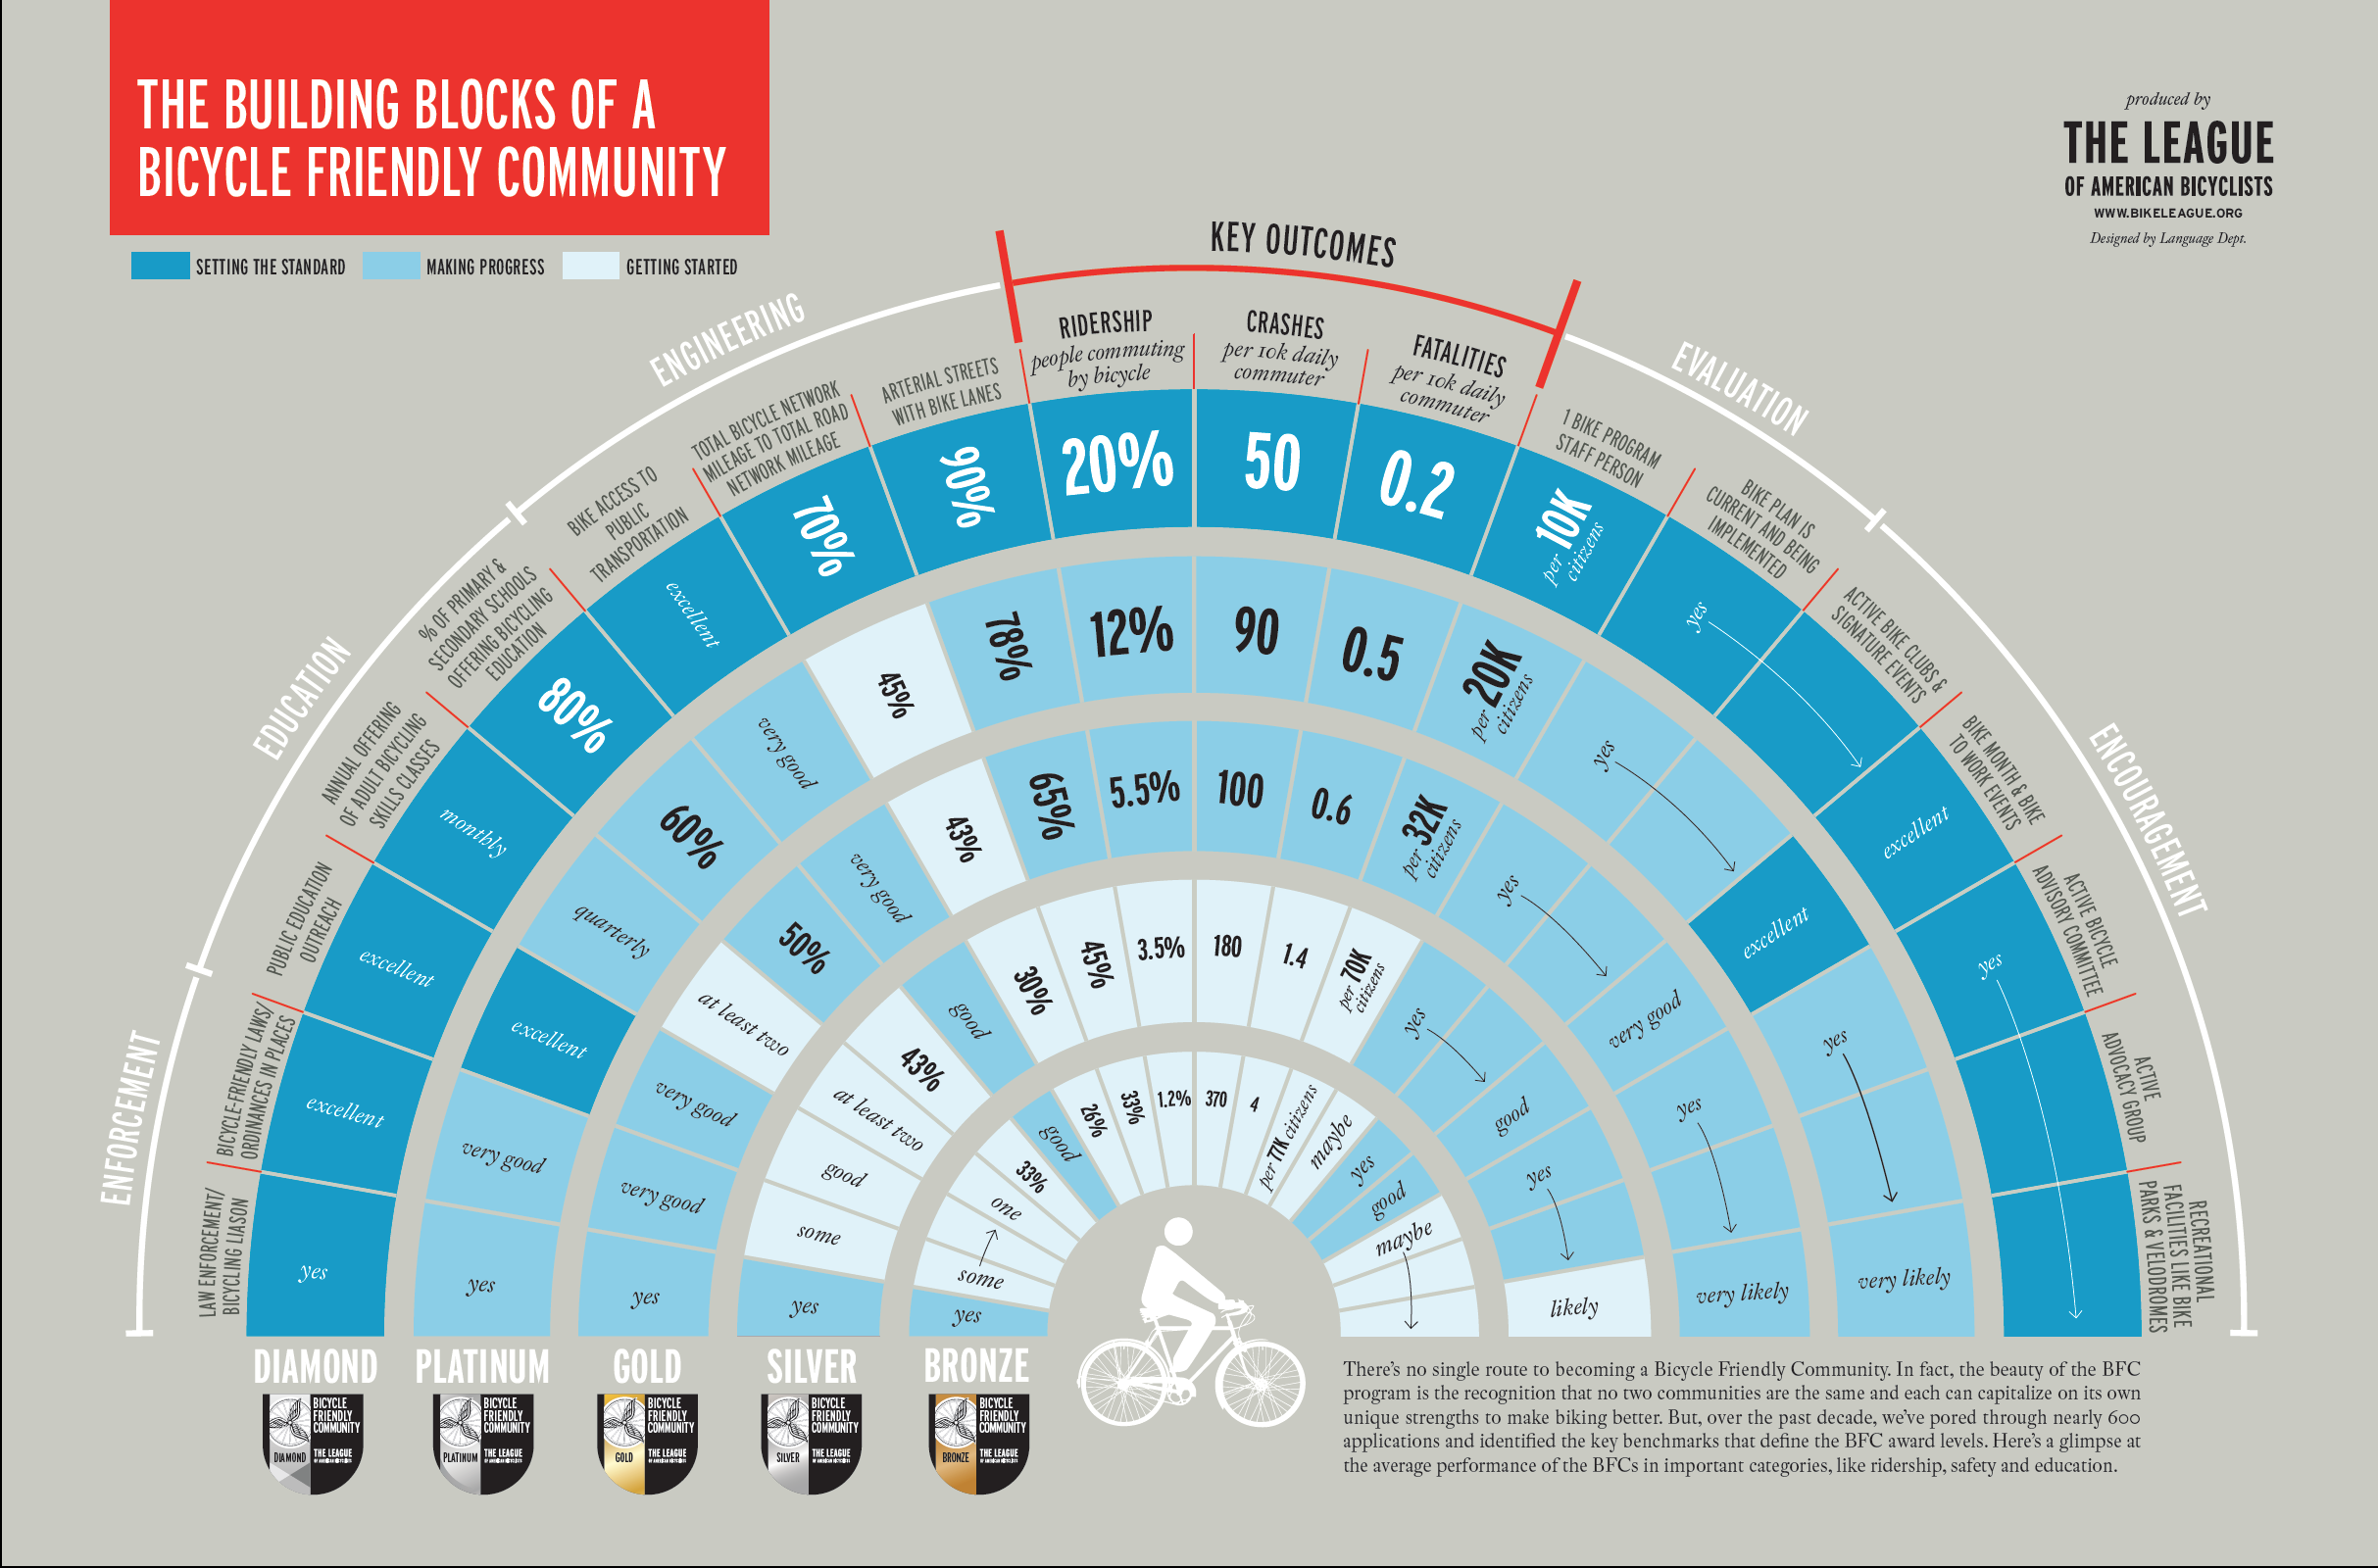 League_of_American_Bicyclists_Infographic.png